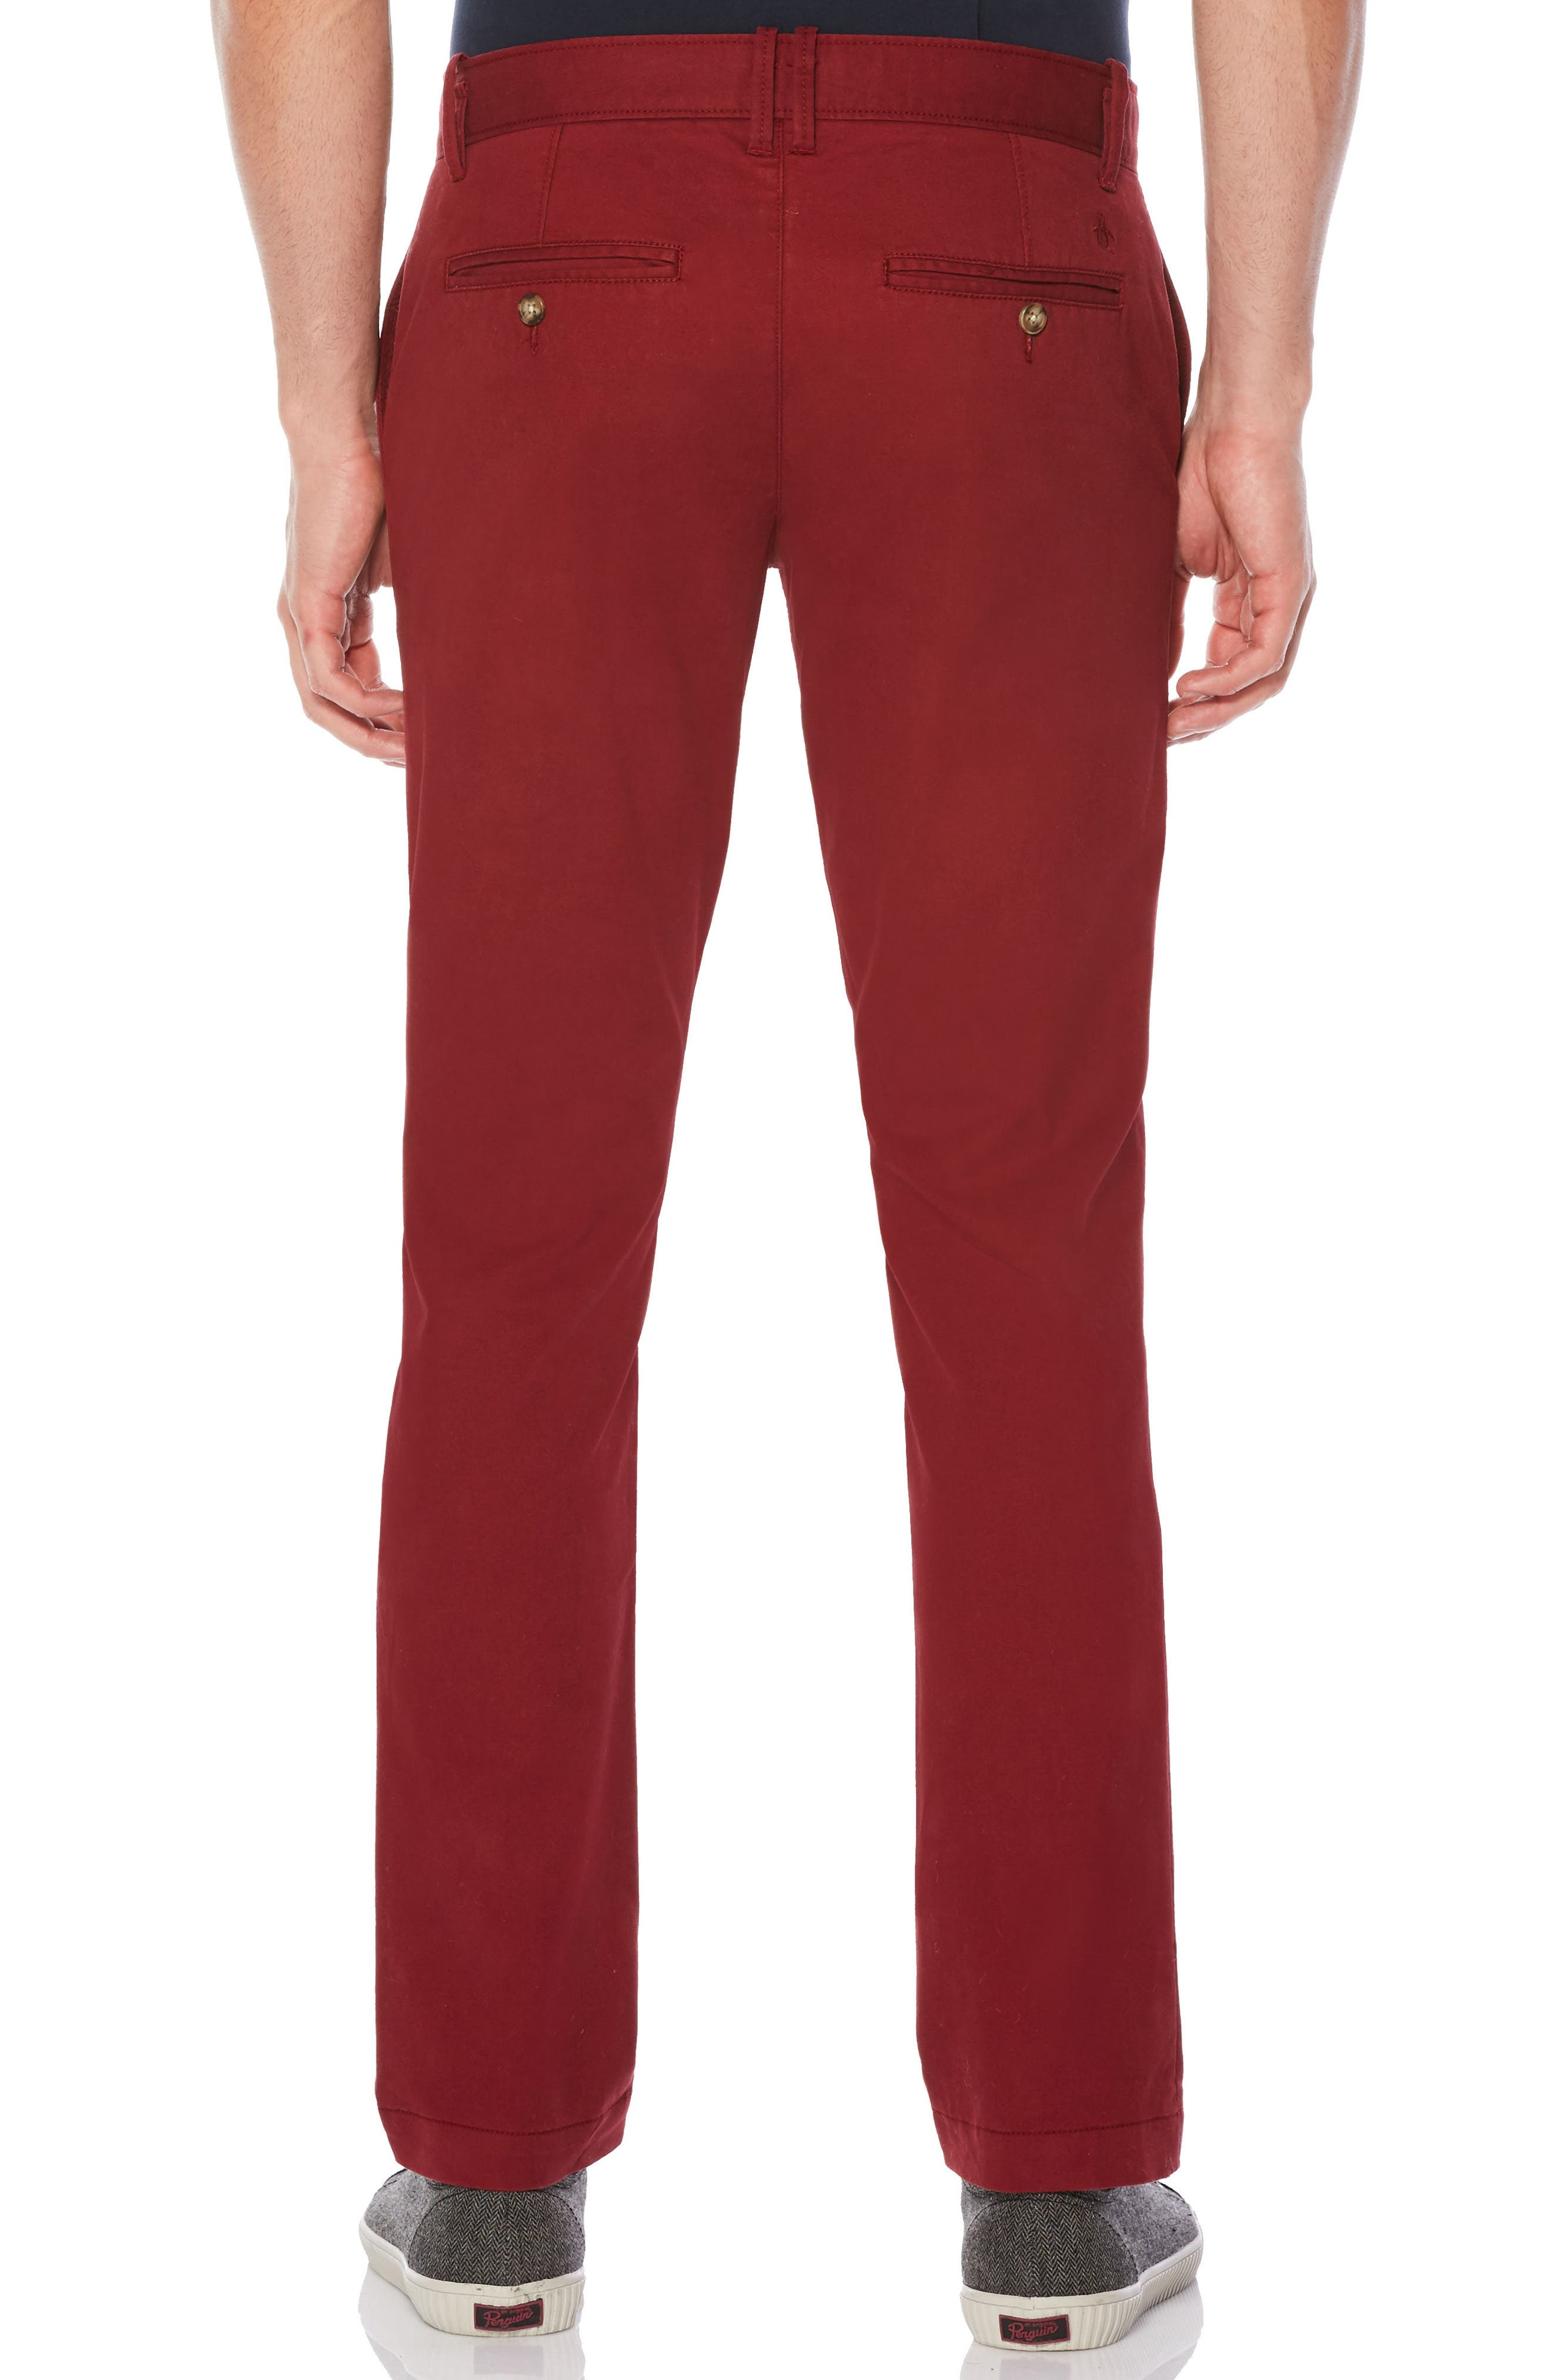 P55 Slim Fit Stretch Chinos,                             Alternate thumbnail 2, color,